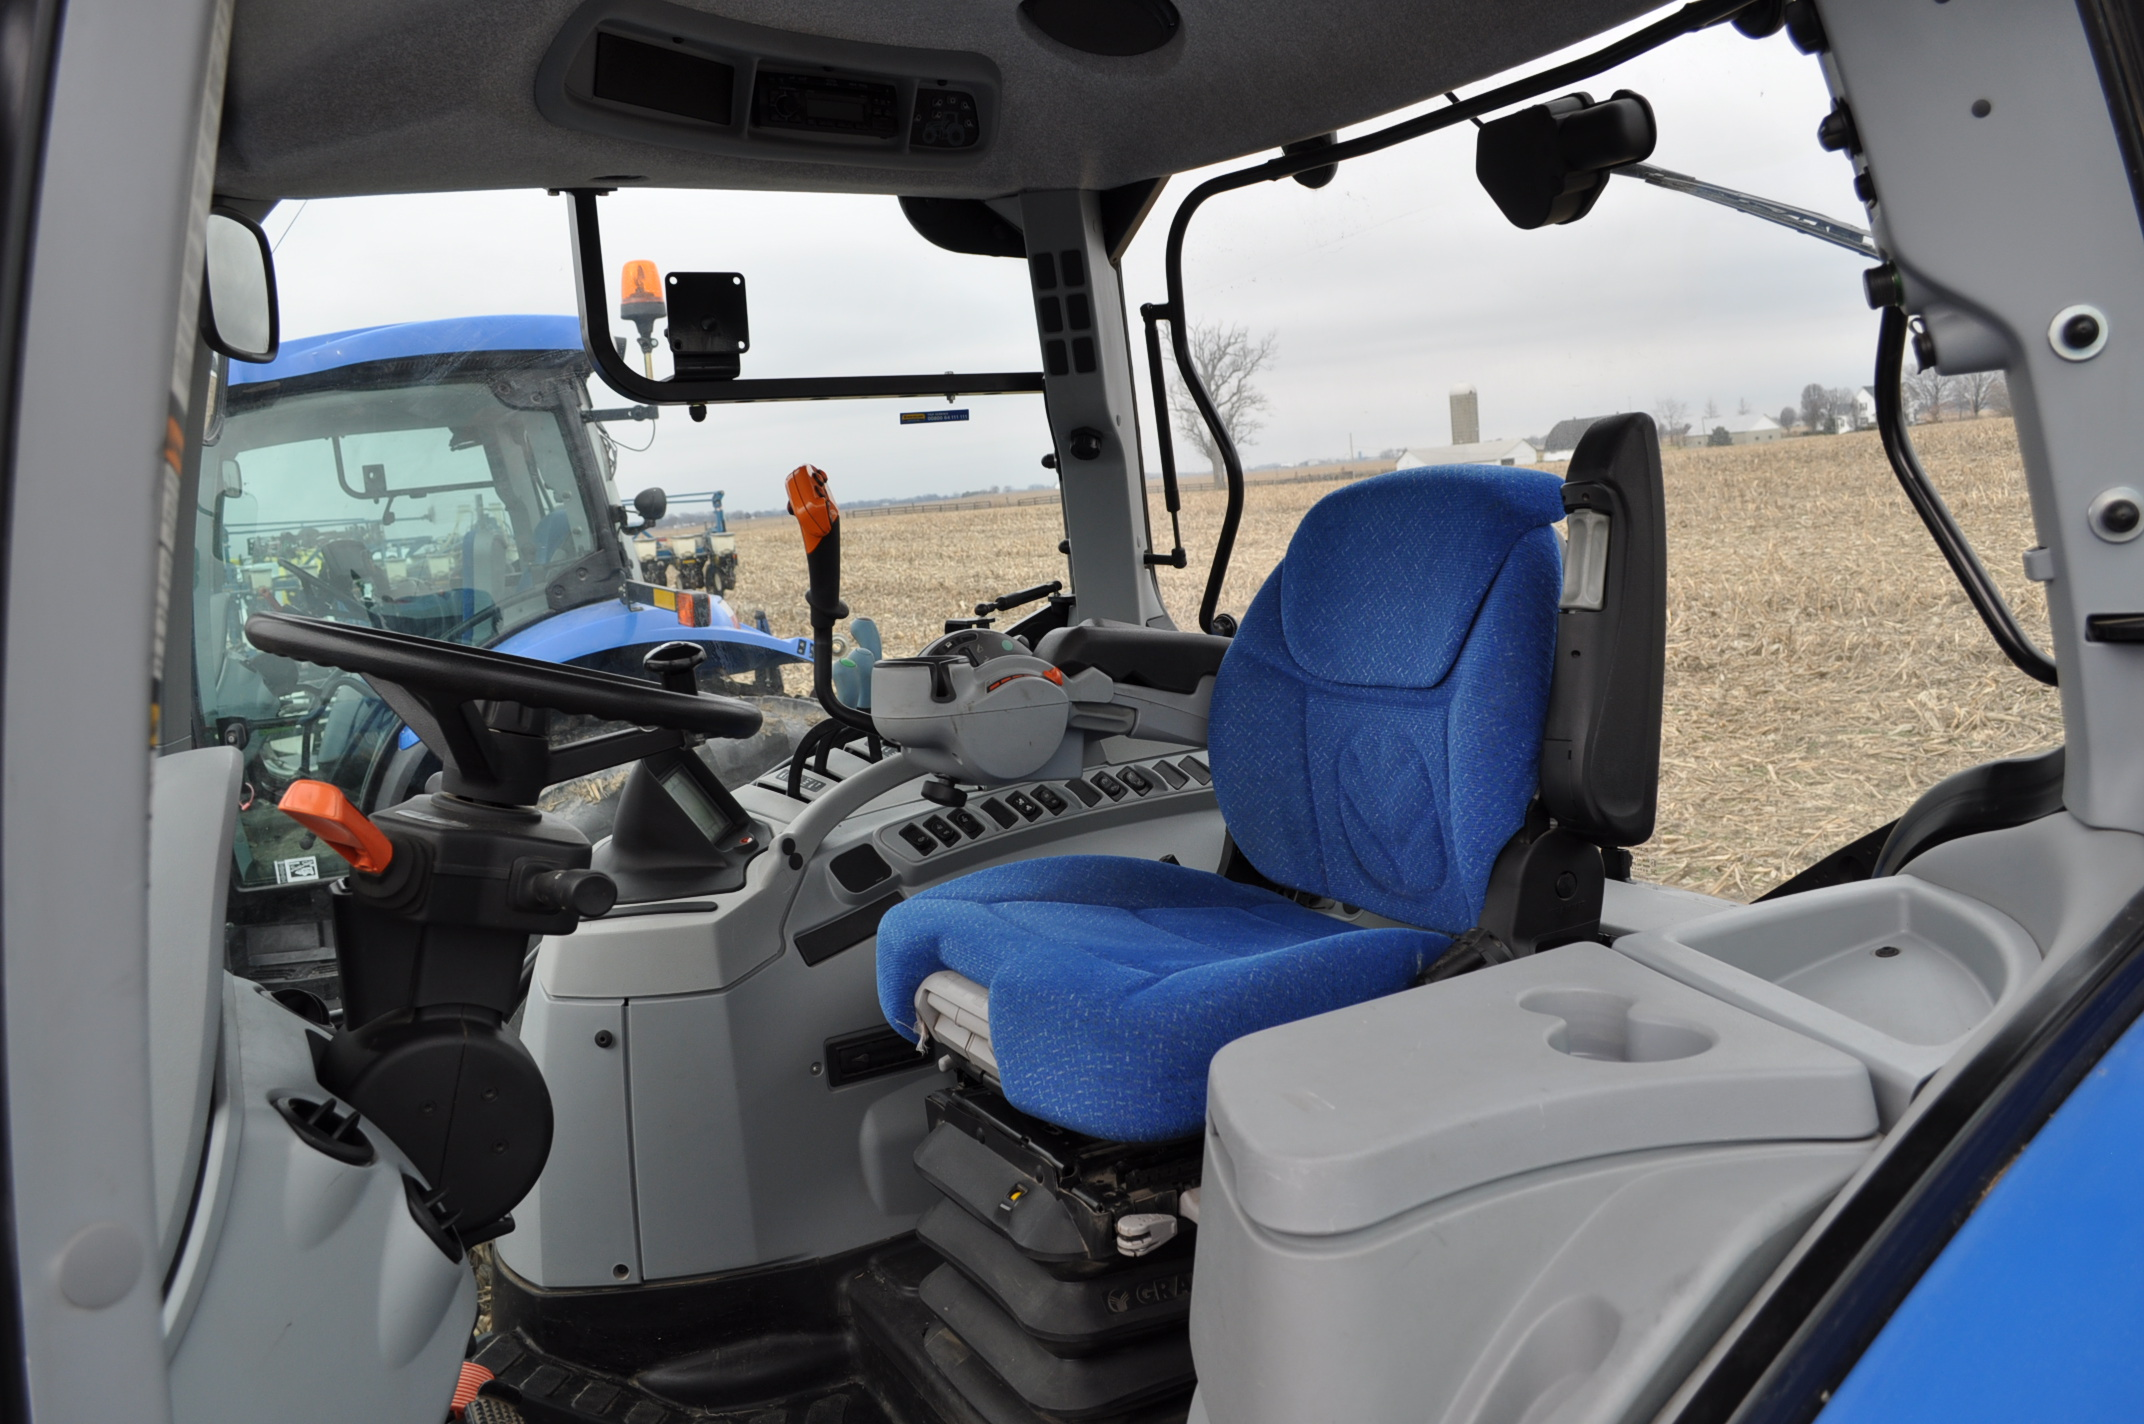 New Holland T7.210 MFWD tractor, 460/85 R 42 rear, 380/85 R 30 Firestone front, Super Steer - Image 15 of 24